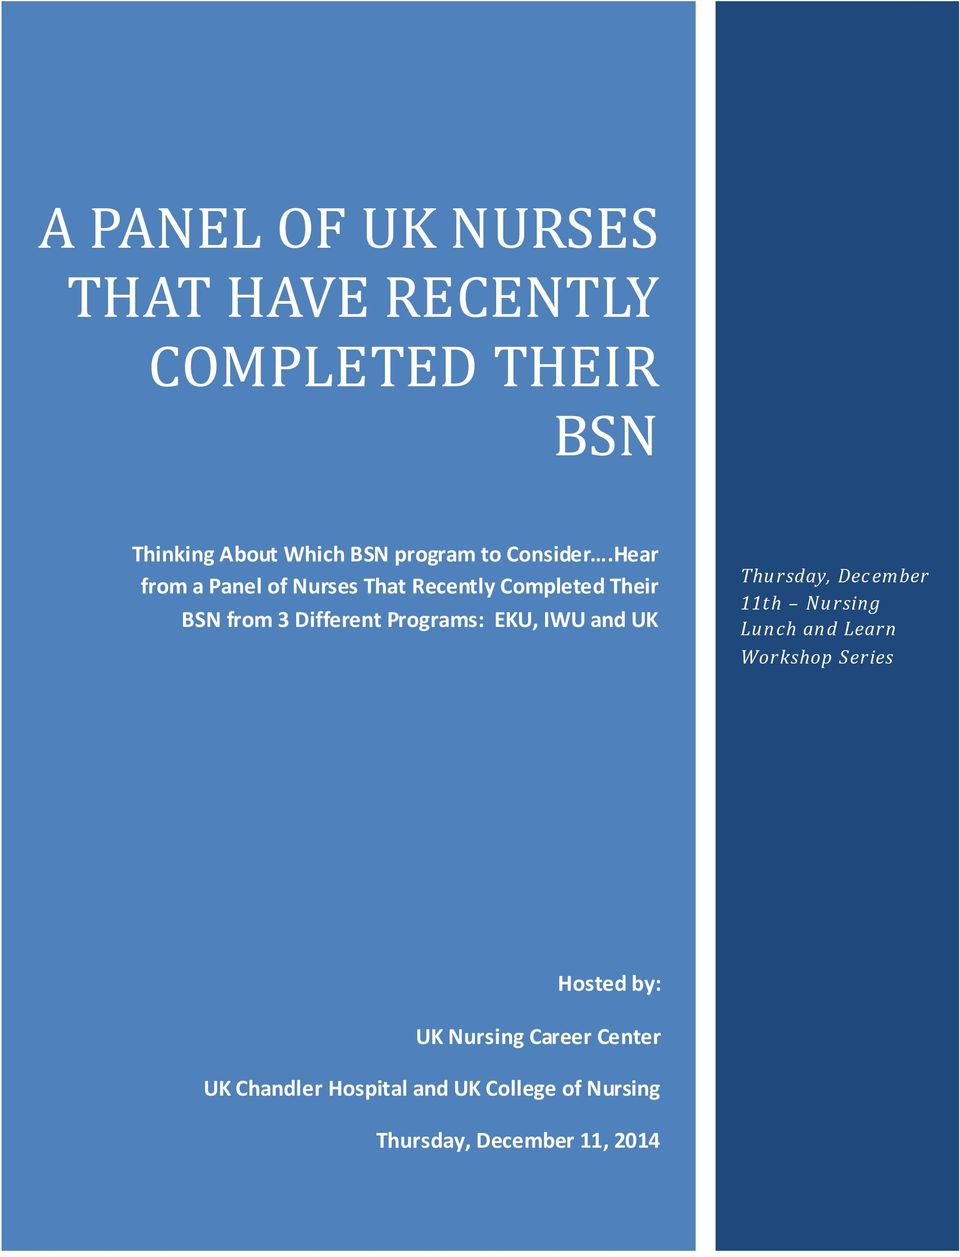 Hear from a Panel of Nurses That Recently Completed Their BSN from 3 Different Programs: EKU,